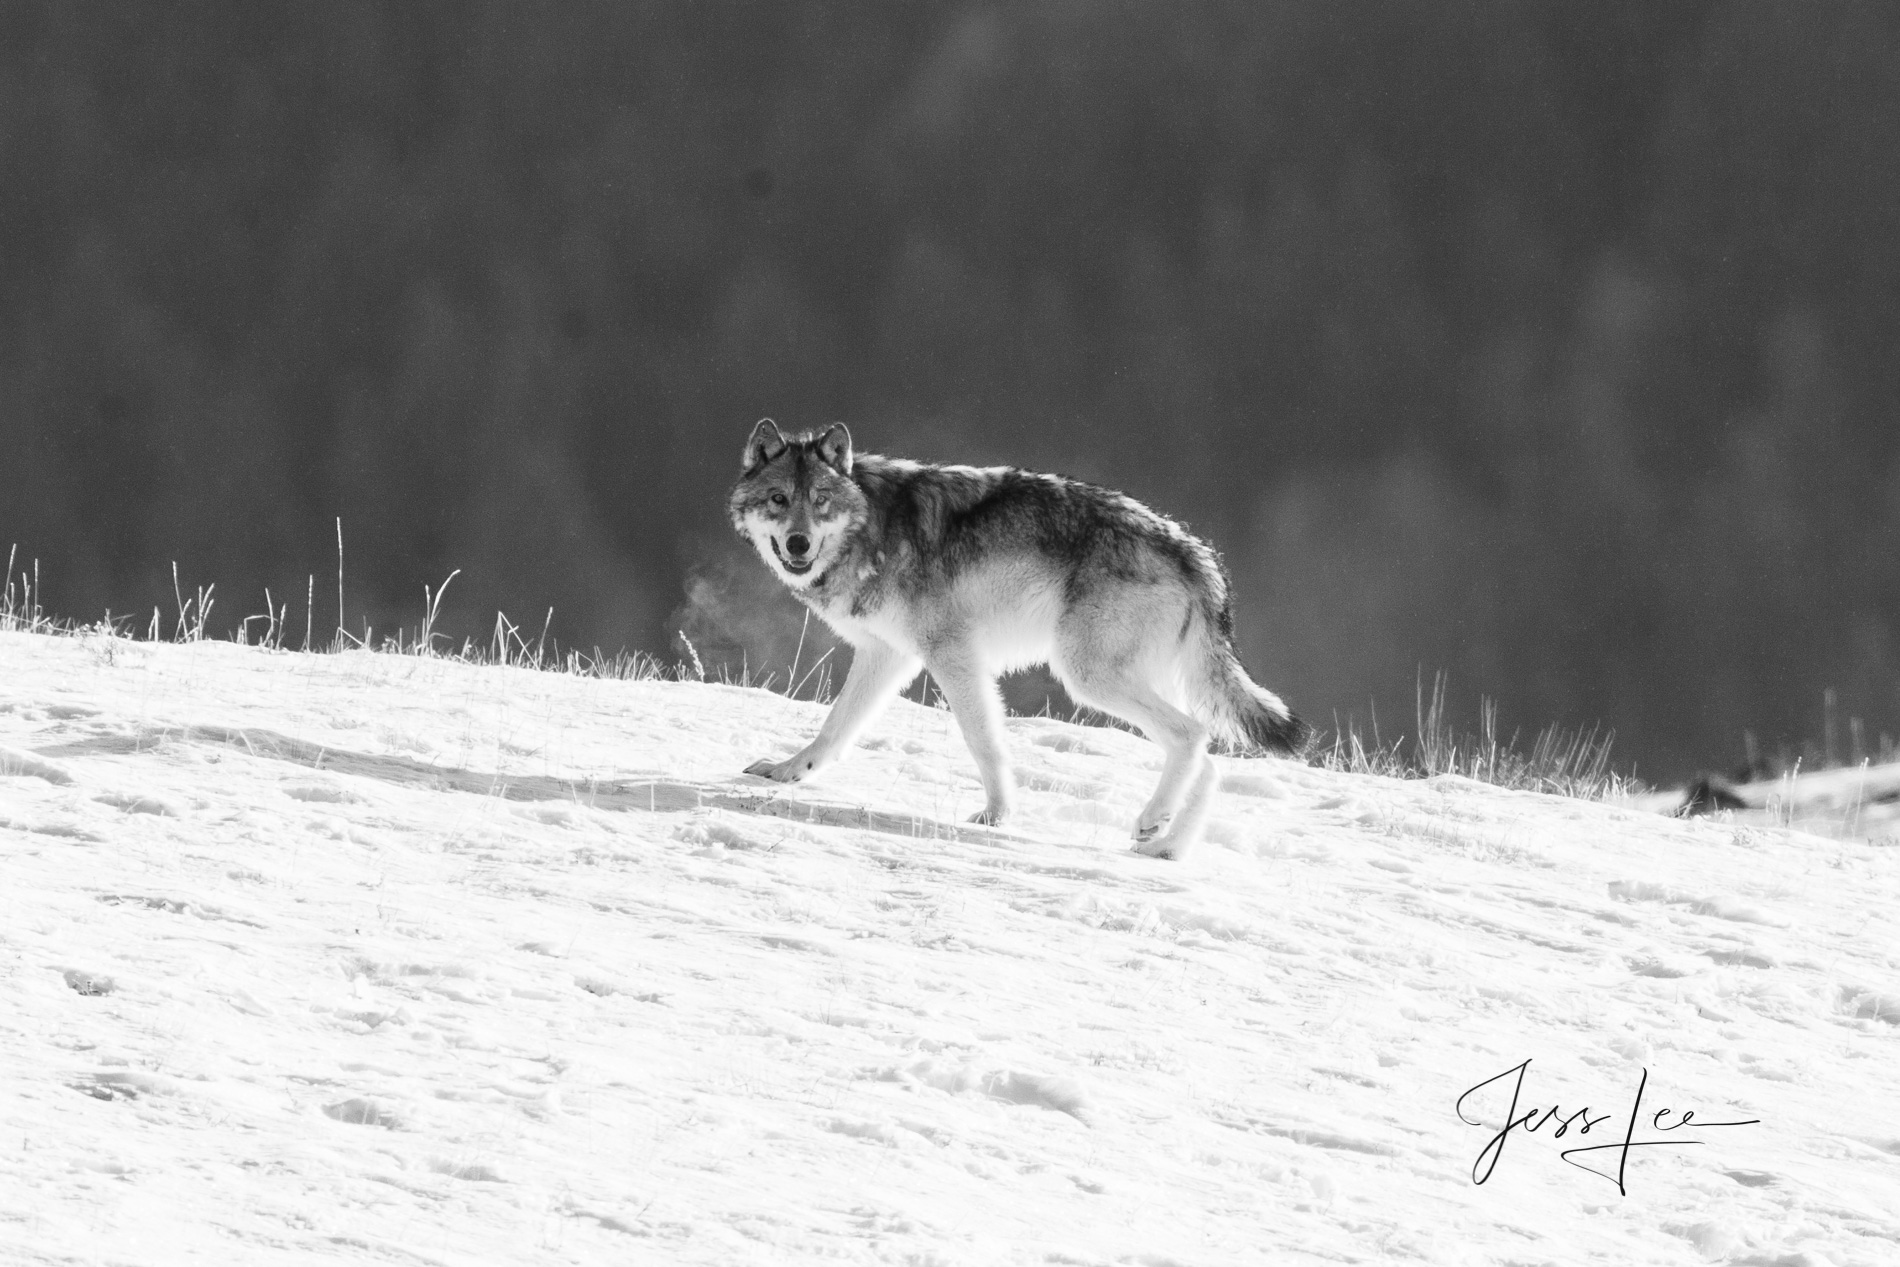 Wild Wolf Photo, fine art print in Black and White for sale.